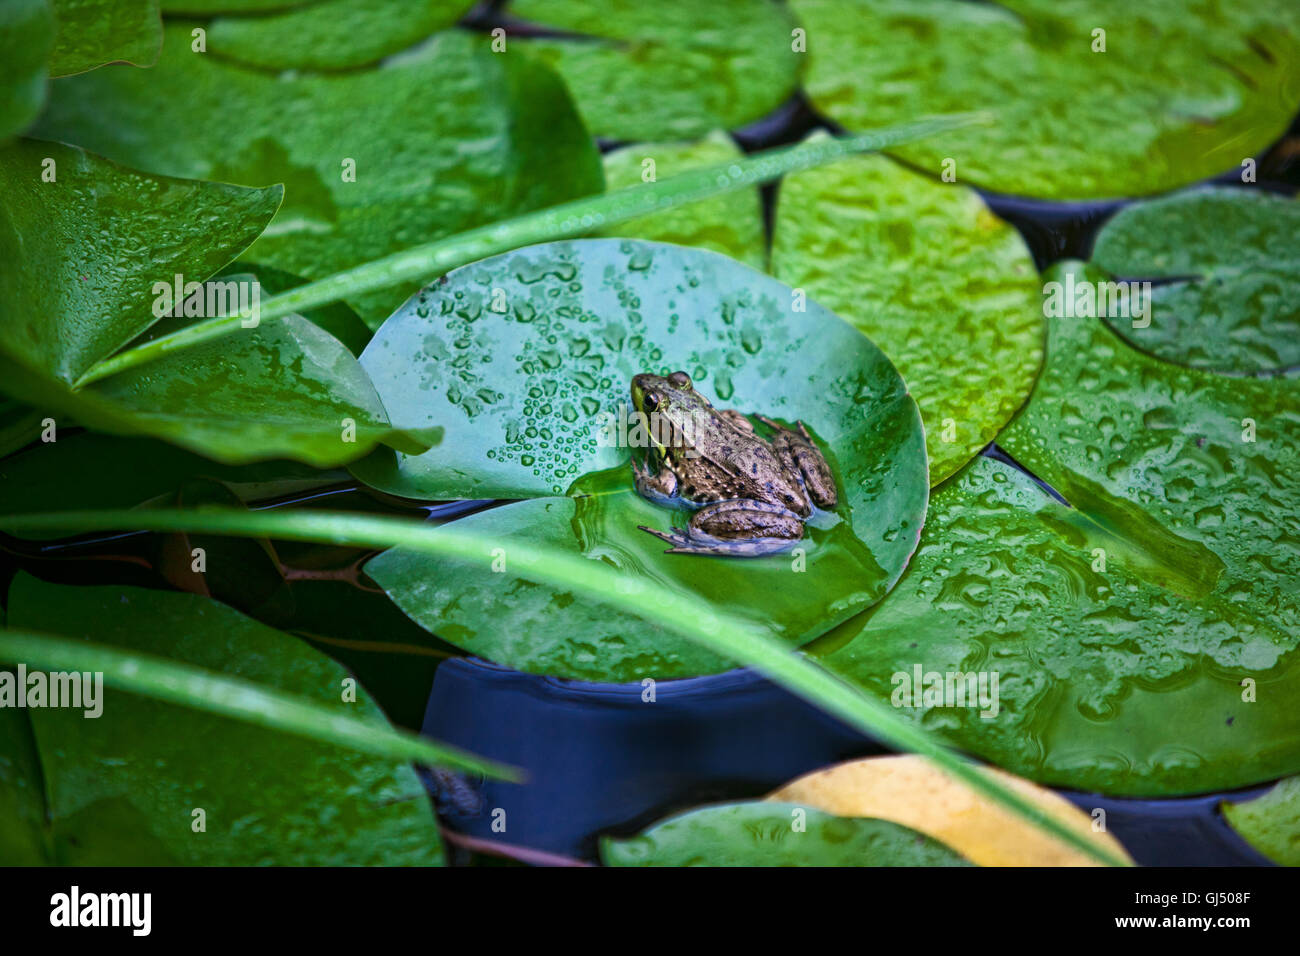 Frog sitting on top of a Lilly Pad in a pond - Stock Image